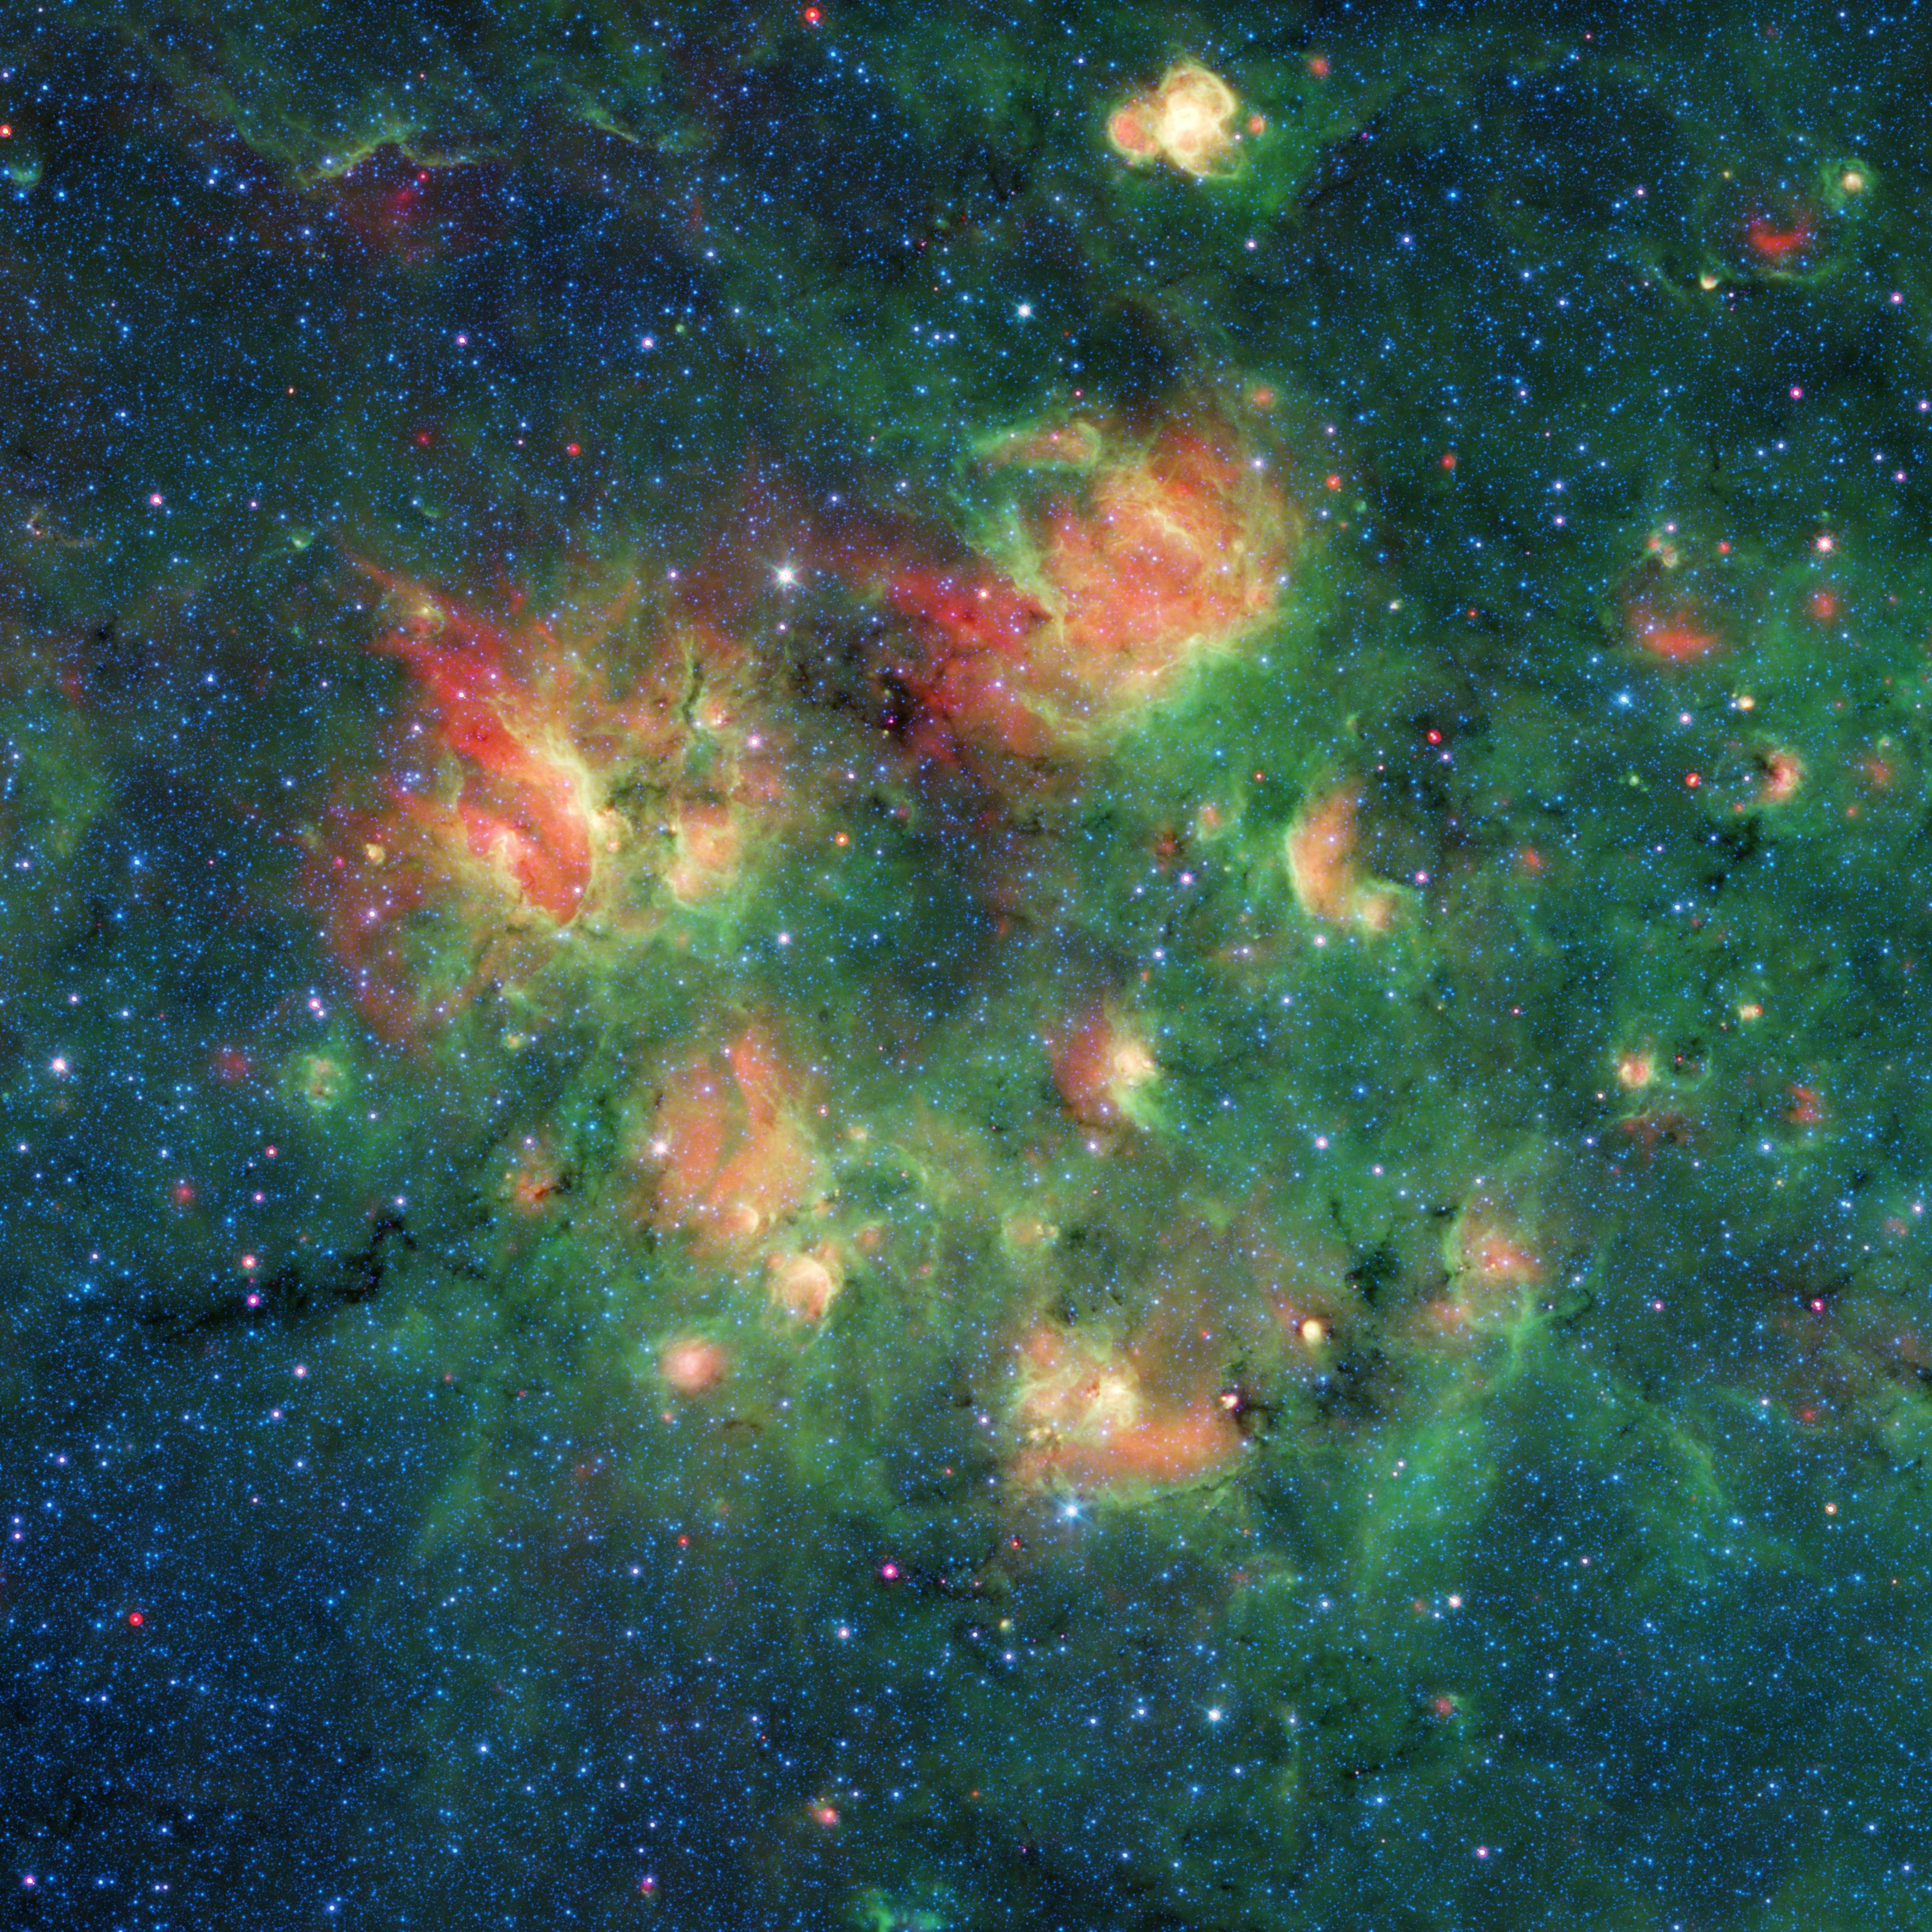 This infrared image from NASAs Spitzer Space Telescope shows a cloud of gas and dust full of bubbles, which are inflated by wind and radiation from massive young stars.